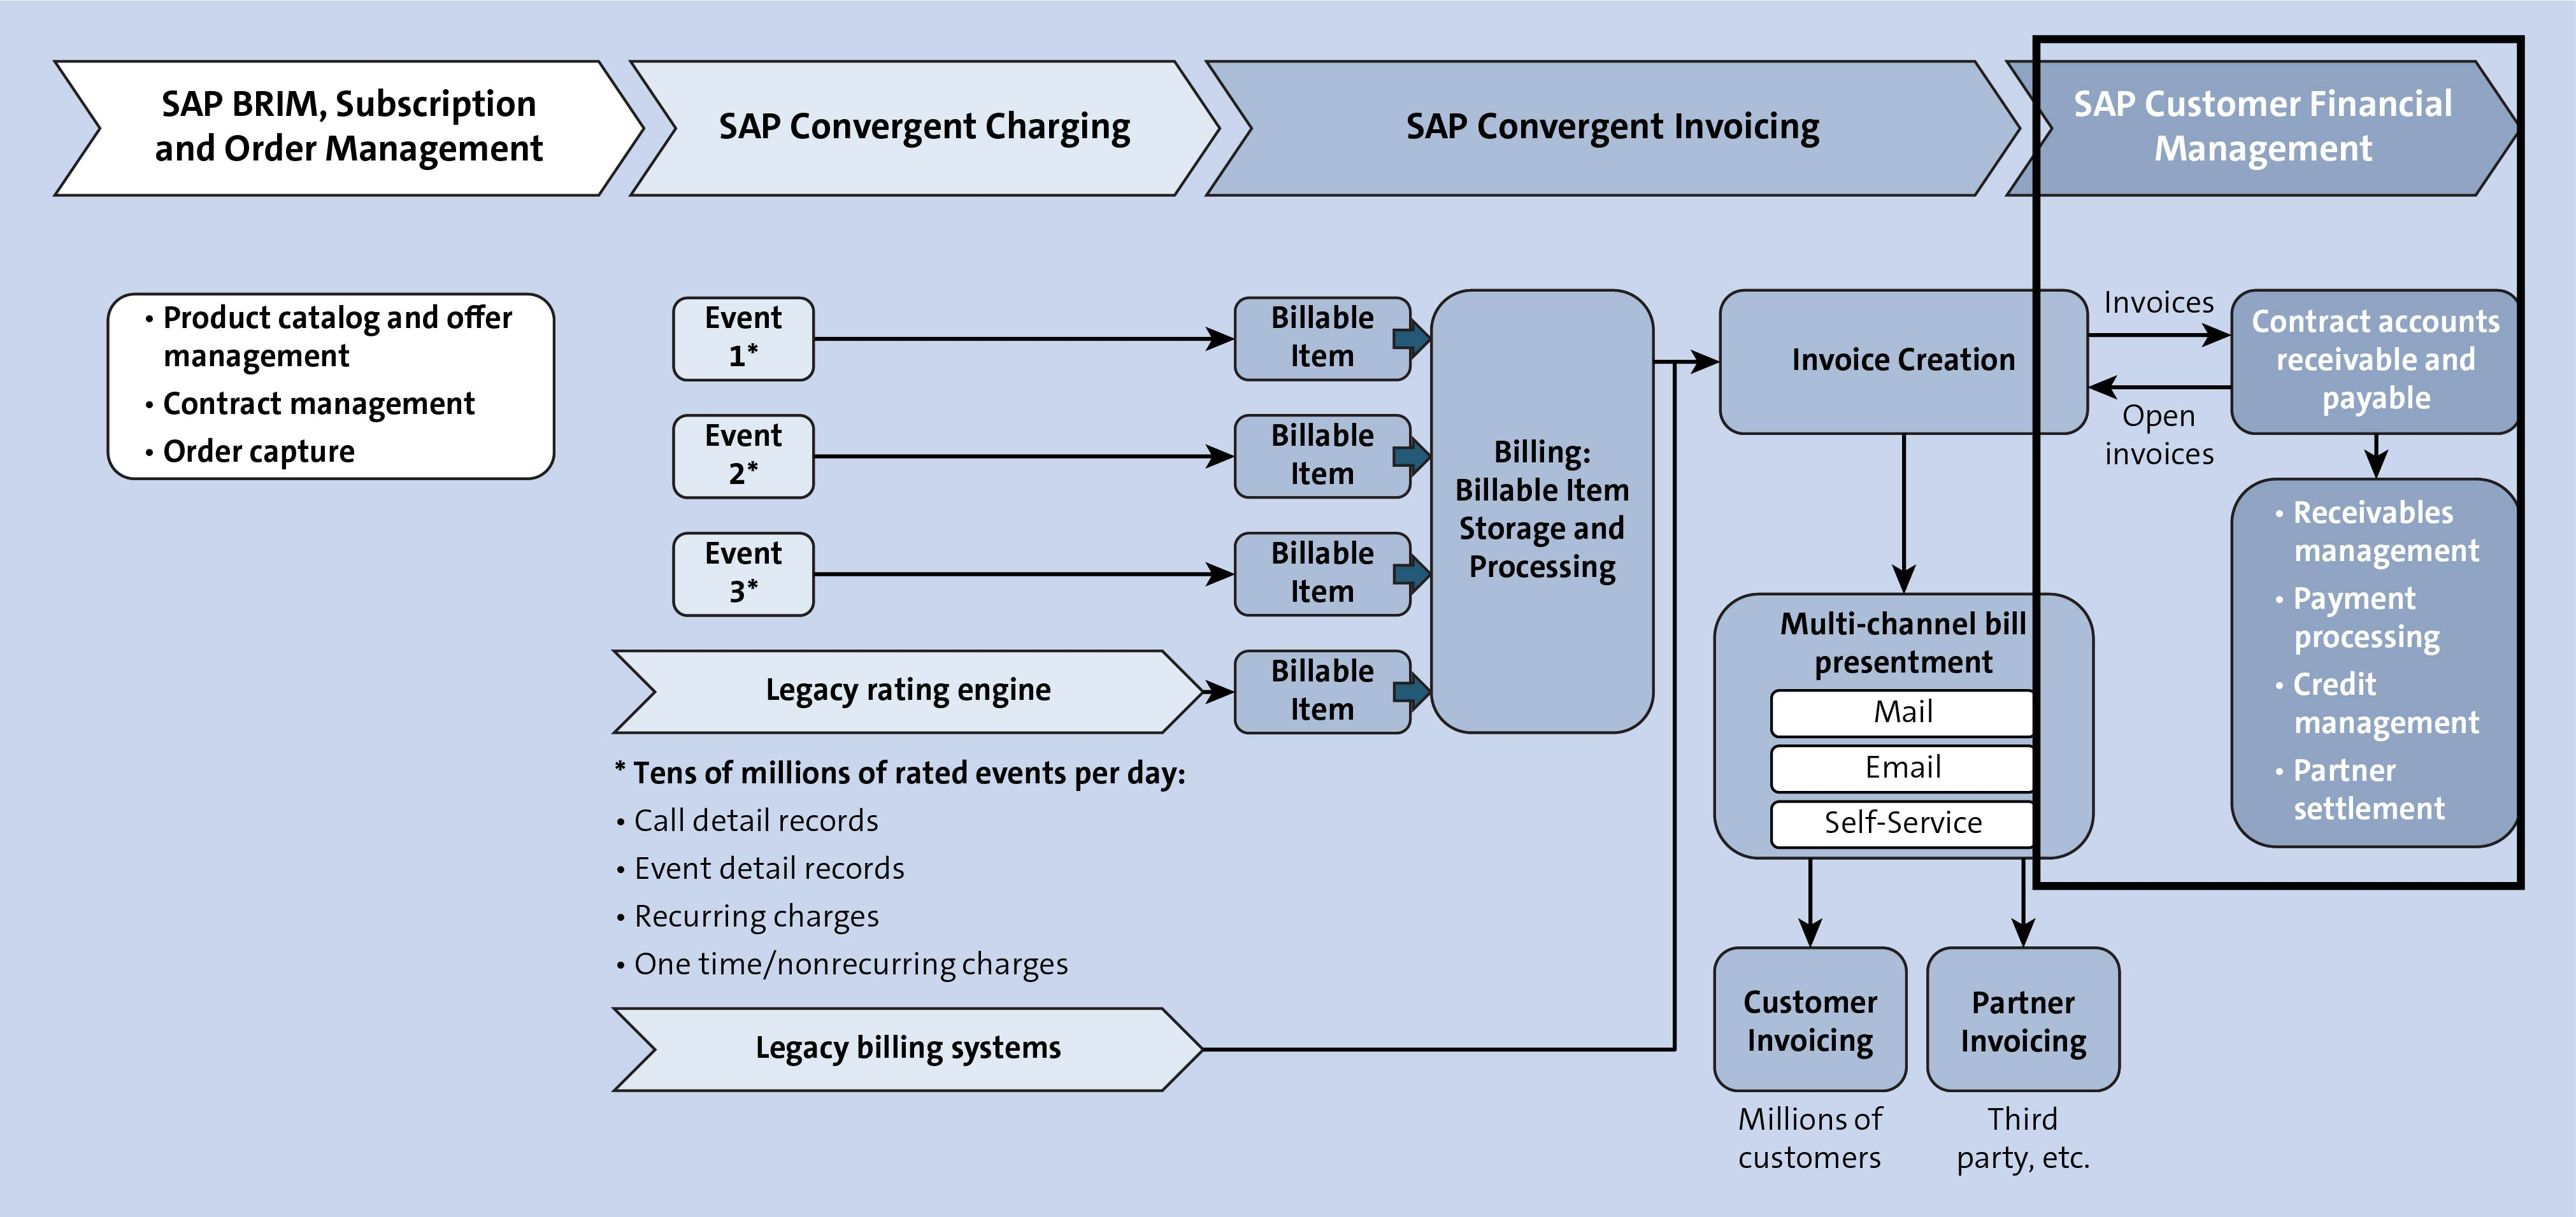 SAP Customer Financial Management